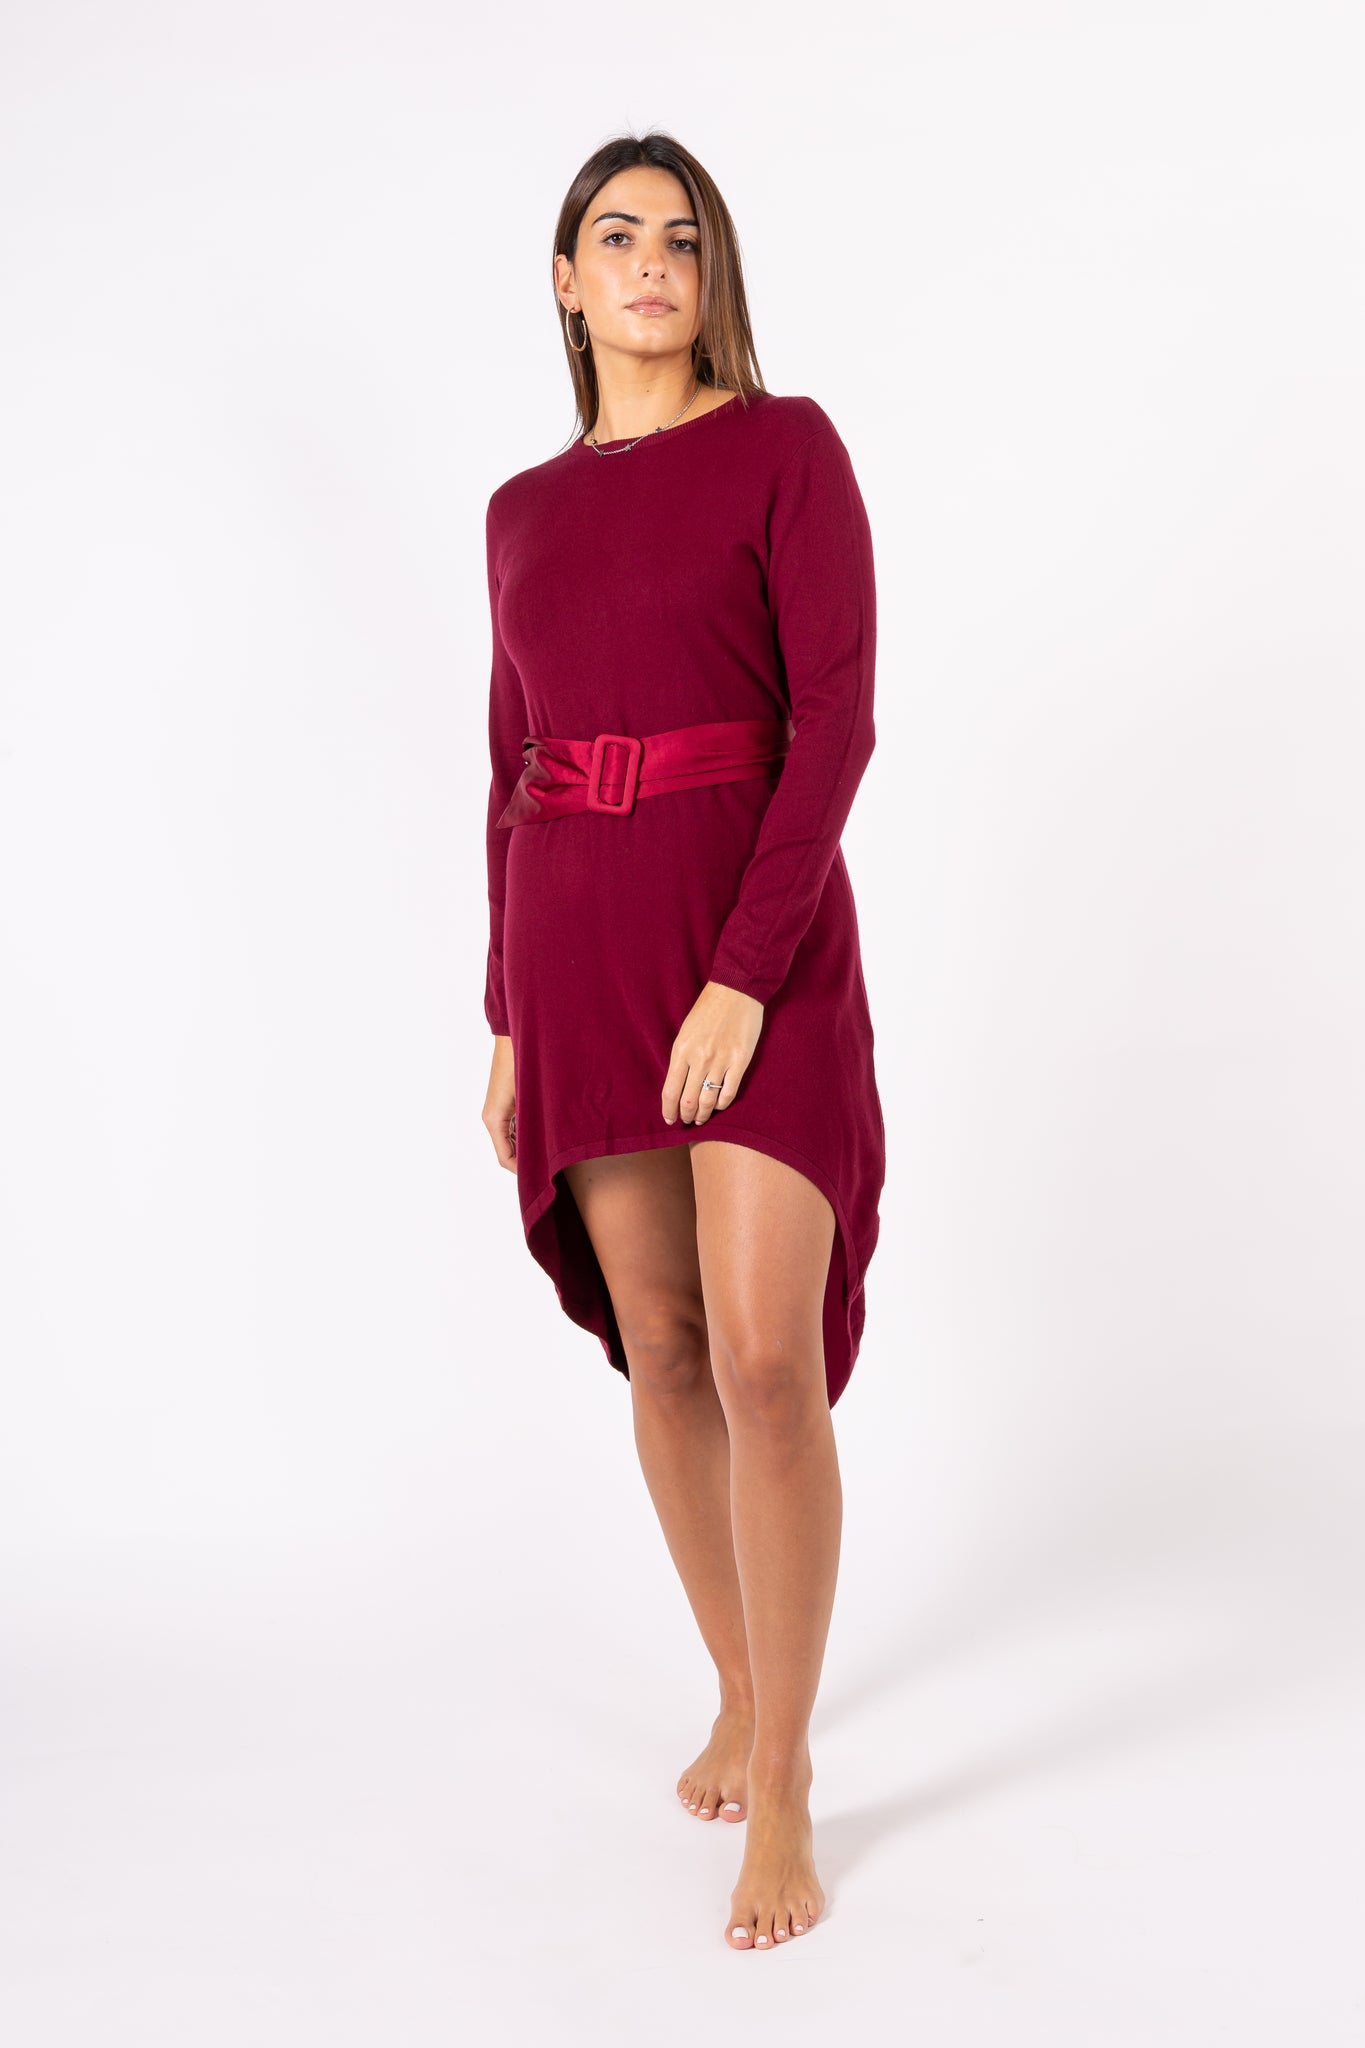 Tailcoat pullover dress with belt